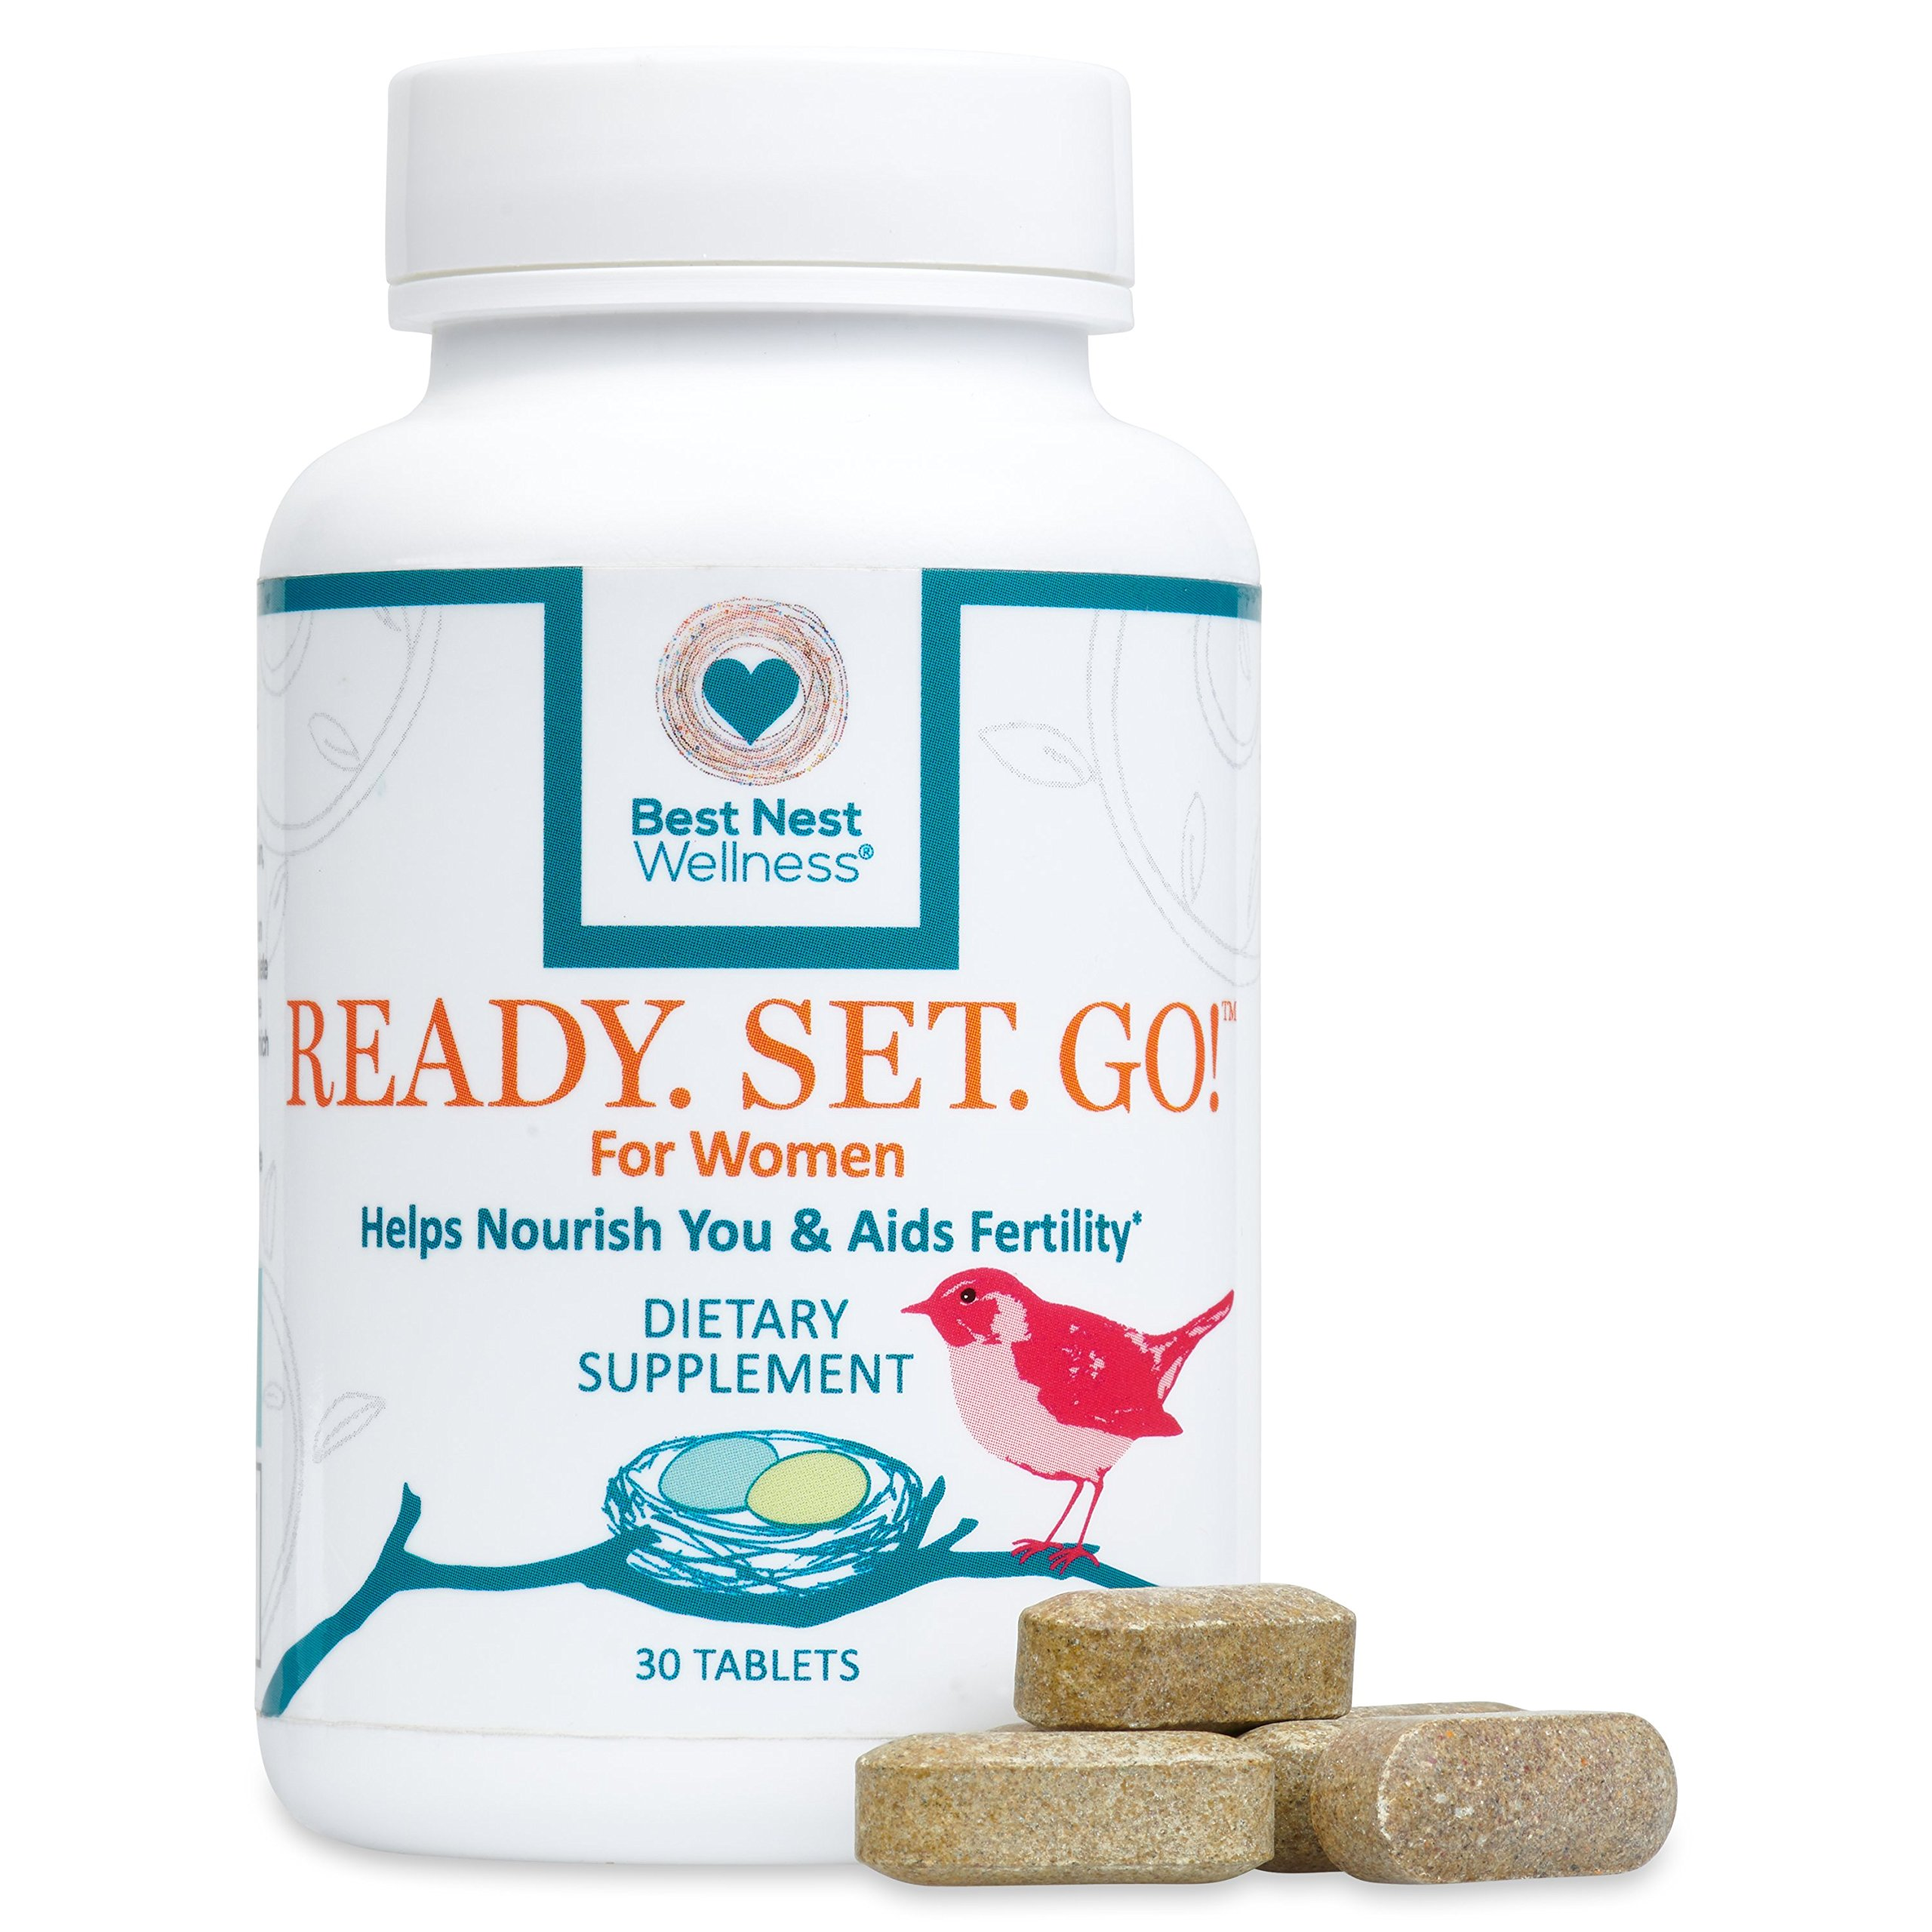 Best Nest Wellness - Ready. Set. Go! Fertility Supplement for Women, with Methylfolate, Antioxidants, and an Herbal Fertility Blend, Boosts Immune System and Provides Whole Body Nutrition, 30 Count